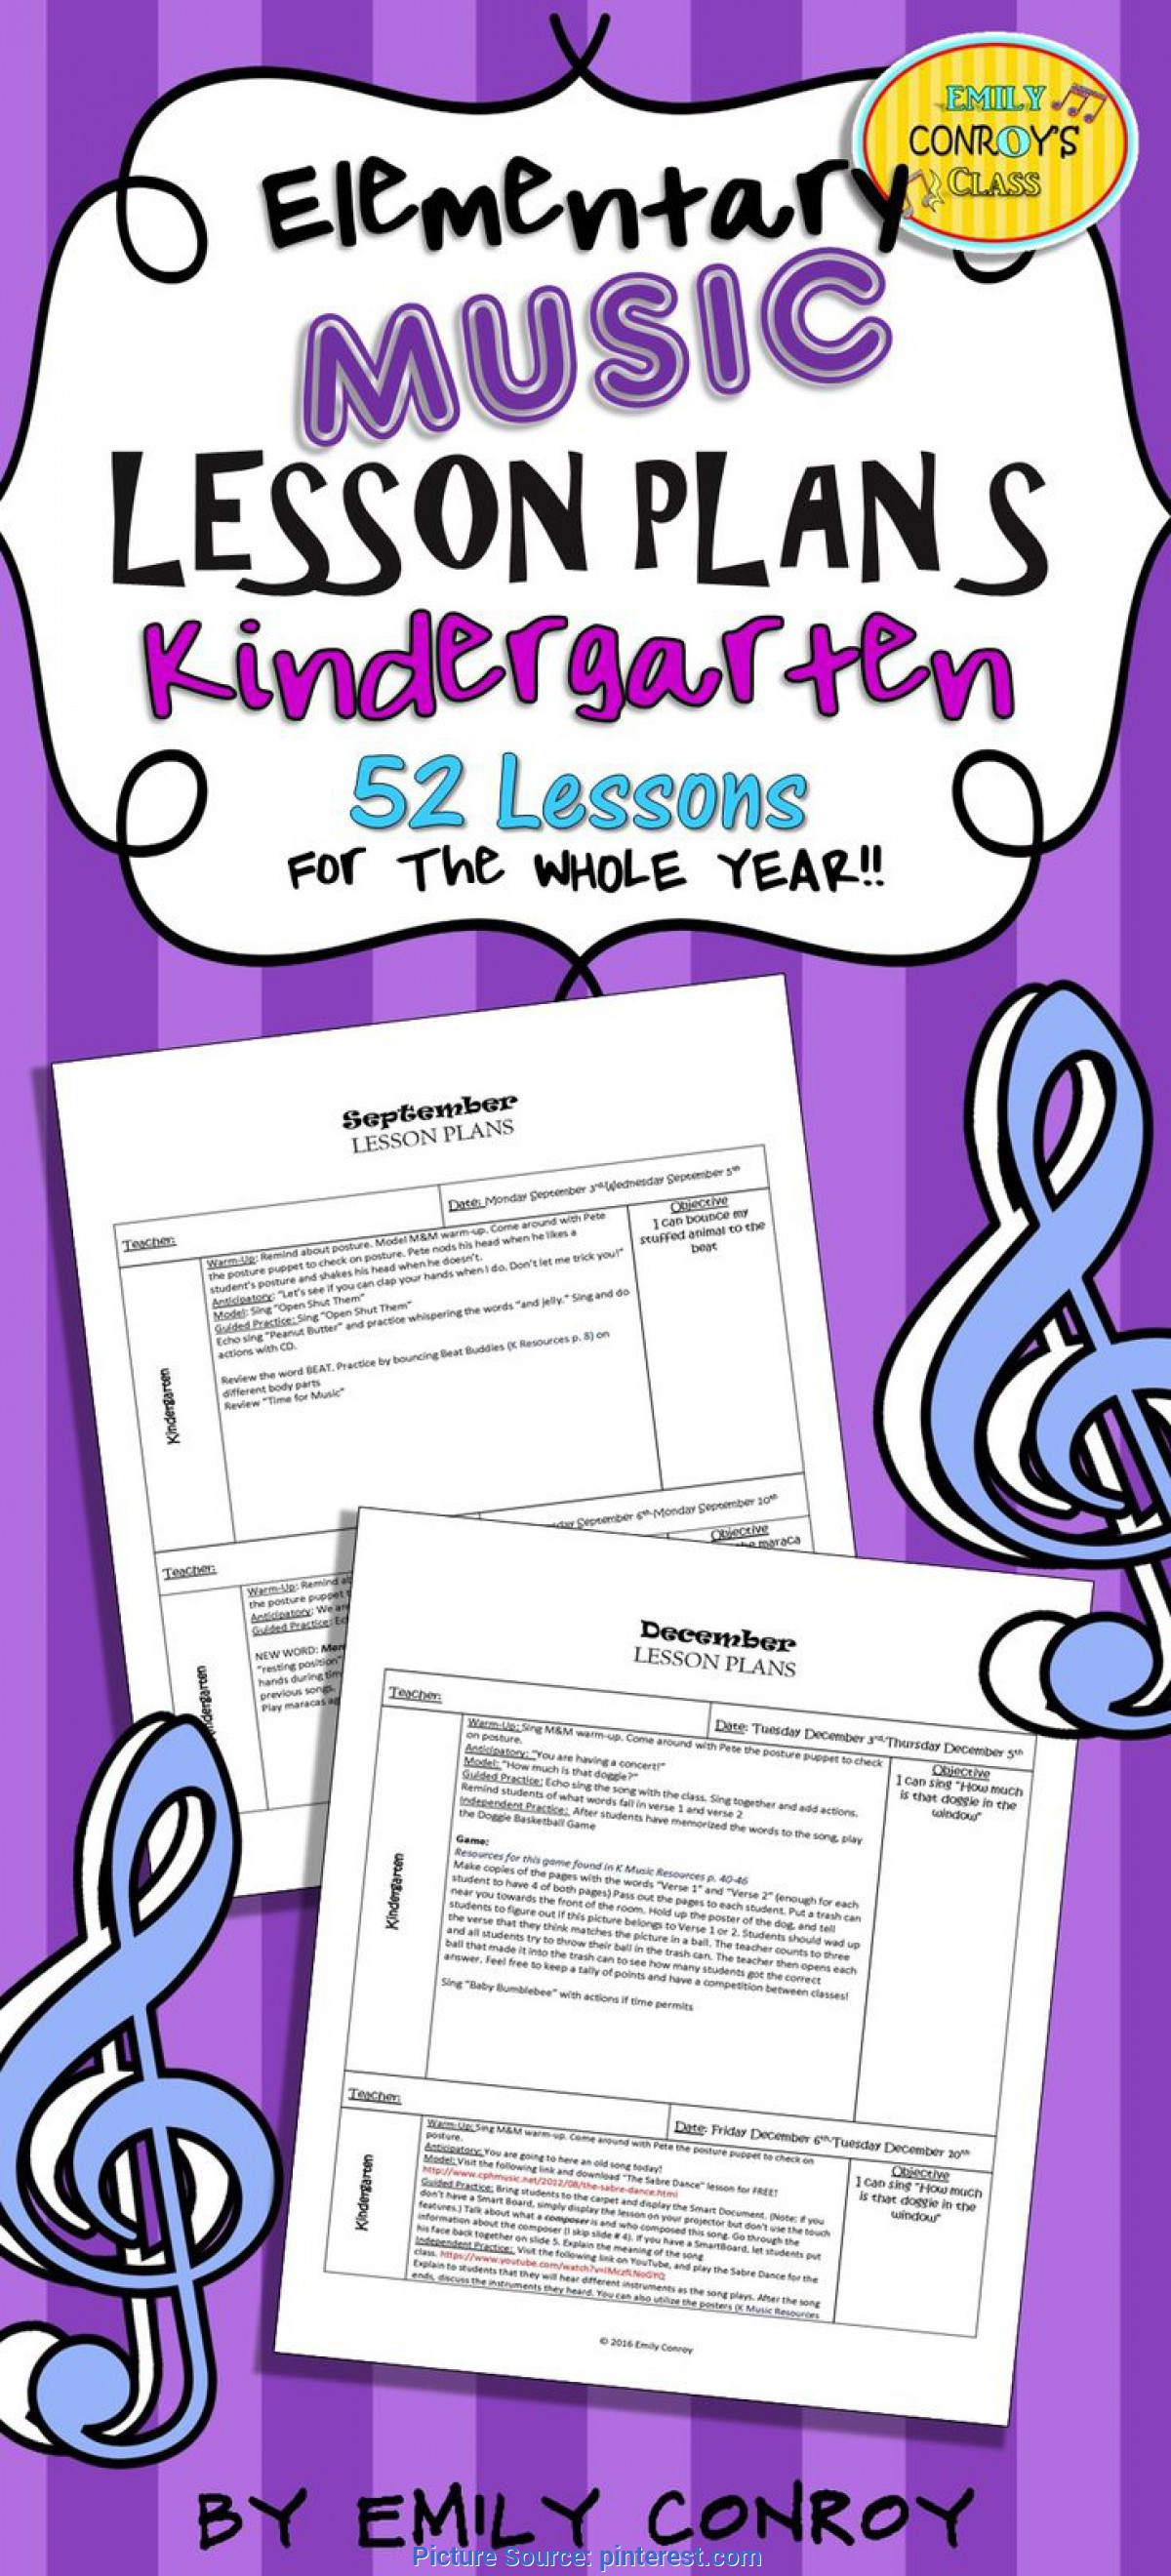 Special Esl Games For 3 Year Olds Best 25 Kids Printable